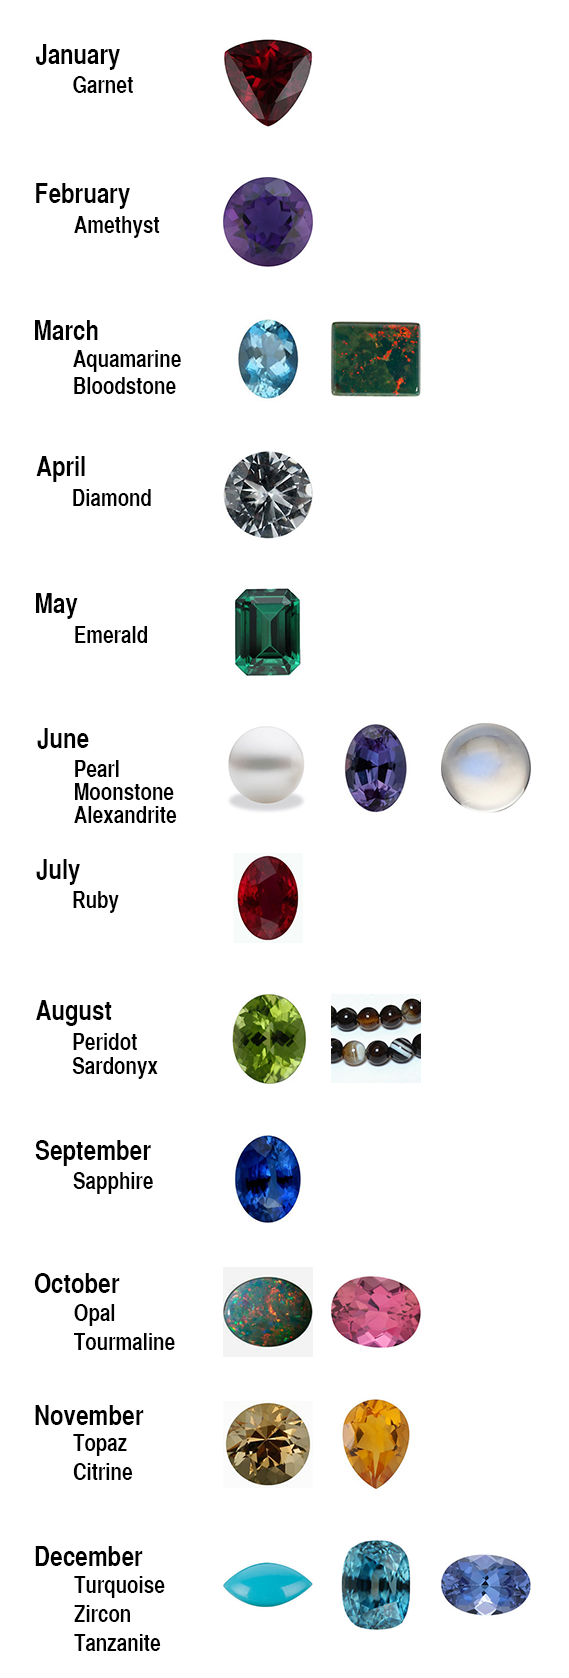 GIA and GJG certified for appraisals and gems